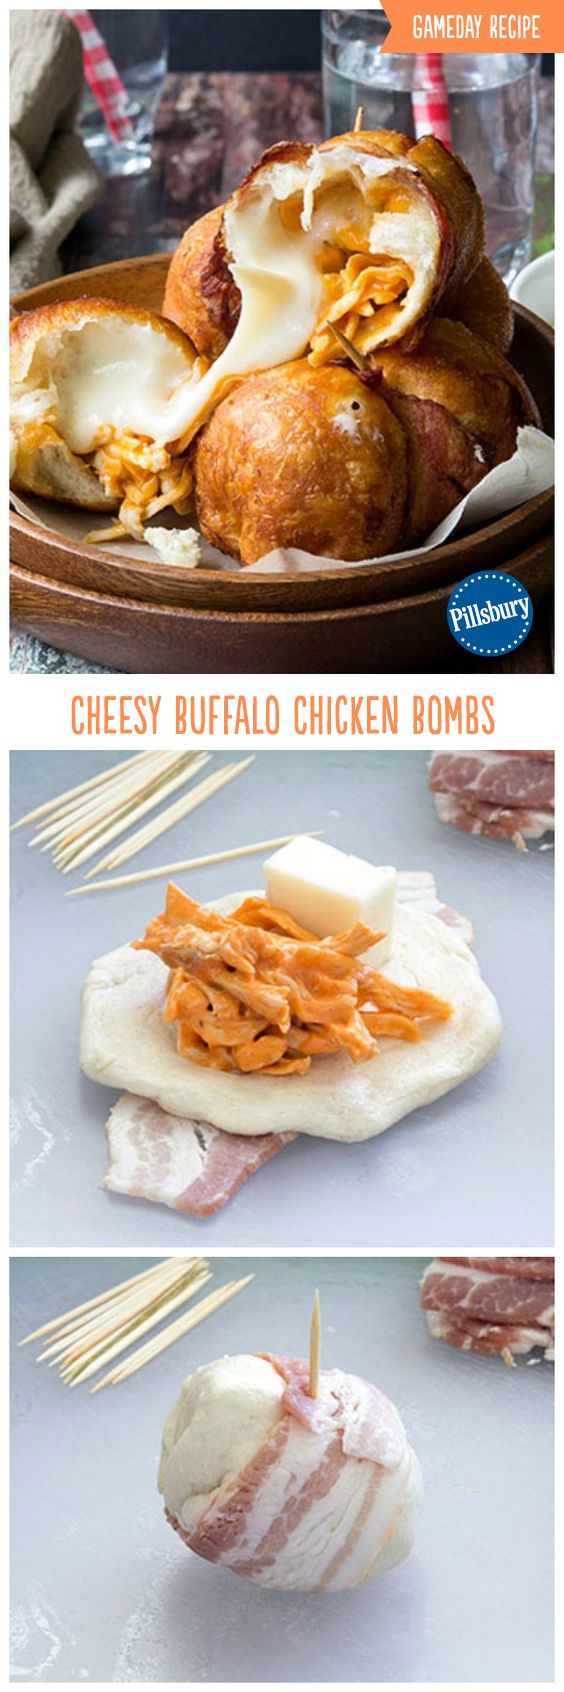 The Game Day snack no one can resist! These Cheesy Buffalo Chicken Bombs are stuffed with ranch, buffalo, bacon and cheese wrapped inside a biscuit. The perfect appetizer for hosting your friends and family.